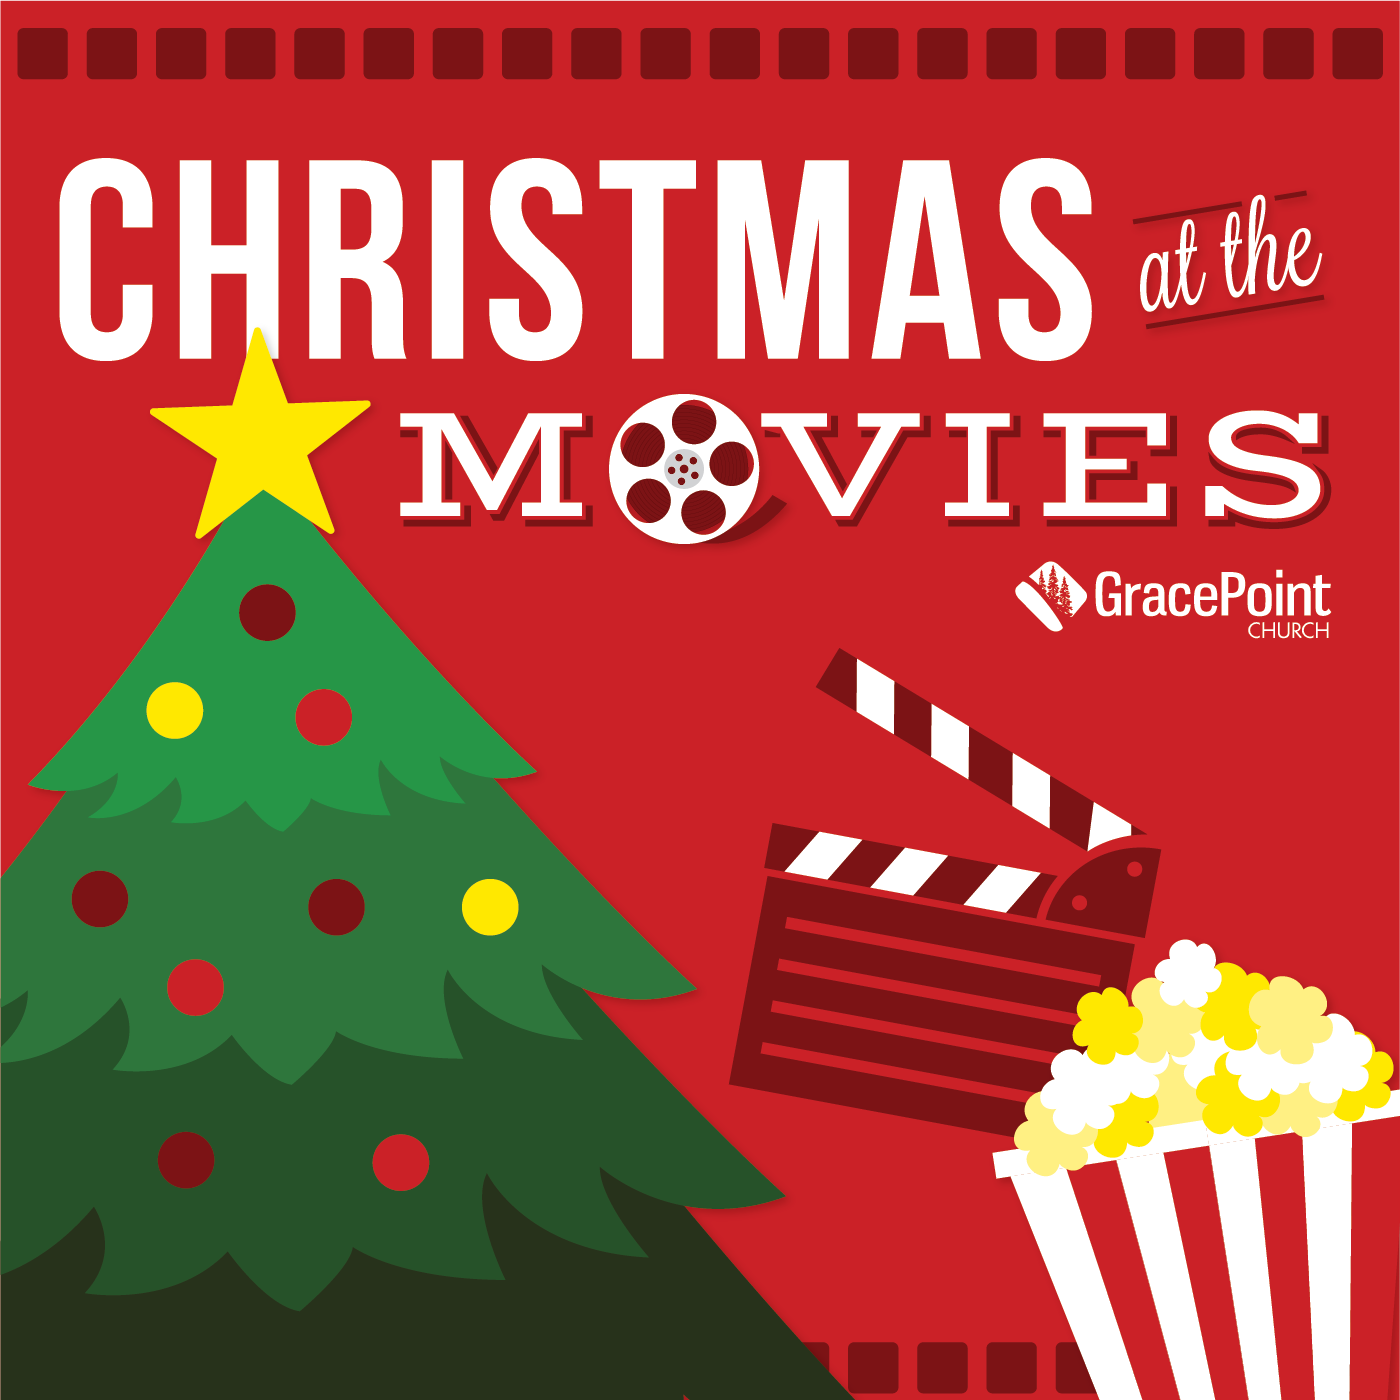 ChristmasAtTheMovies_Podcast-1400x1400.png